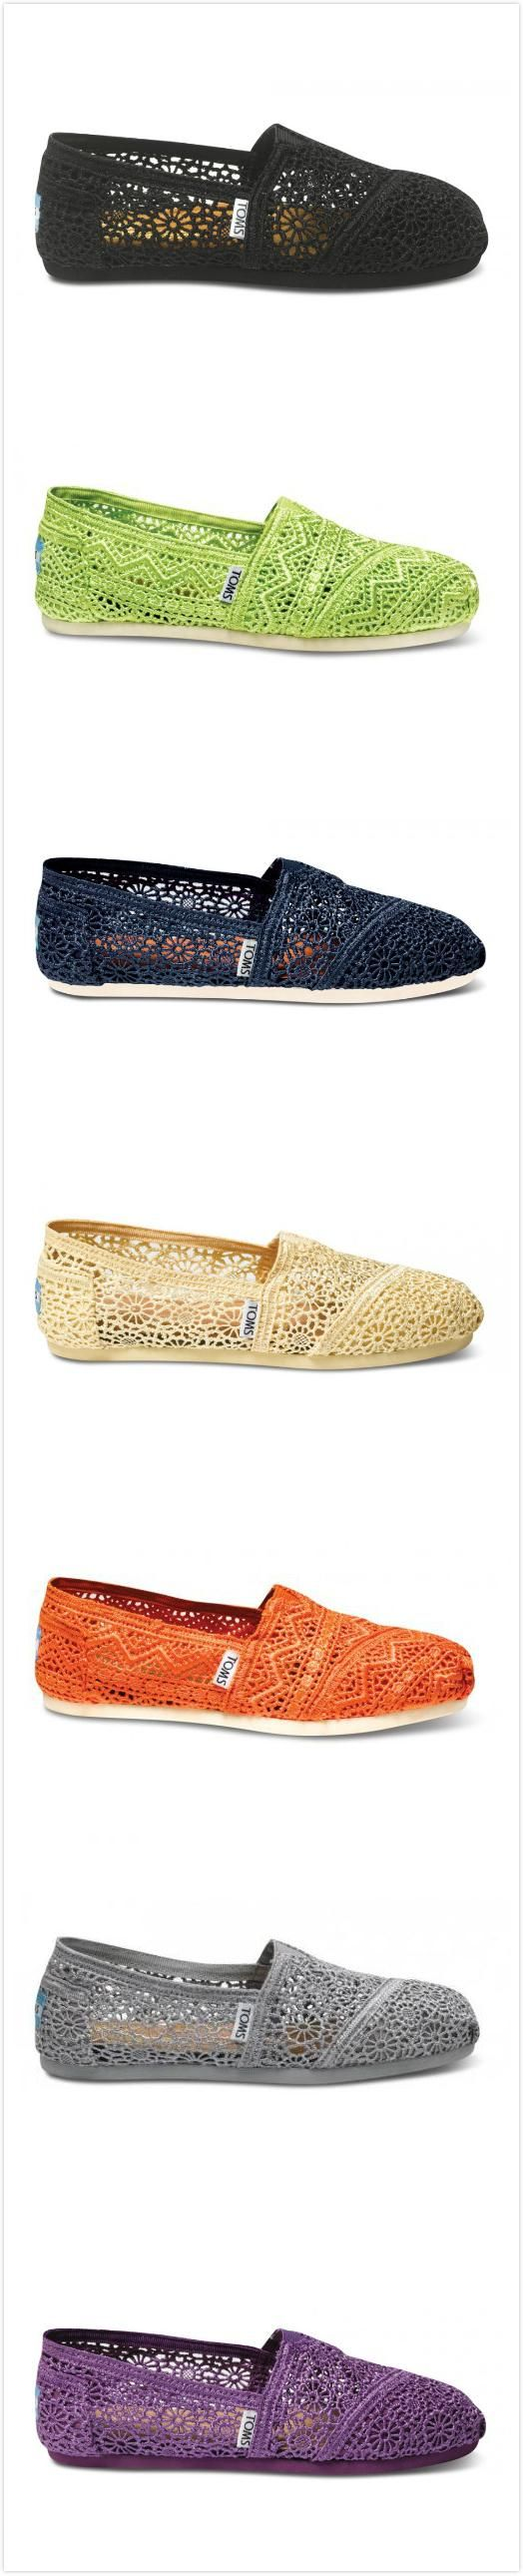 Toms Outlet! $26.99 OMG!!I love them they are super cute!!!